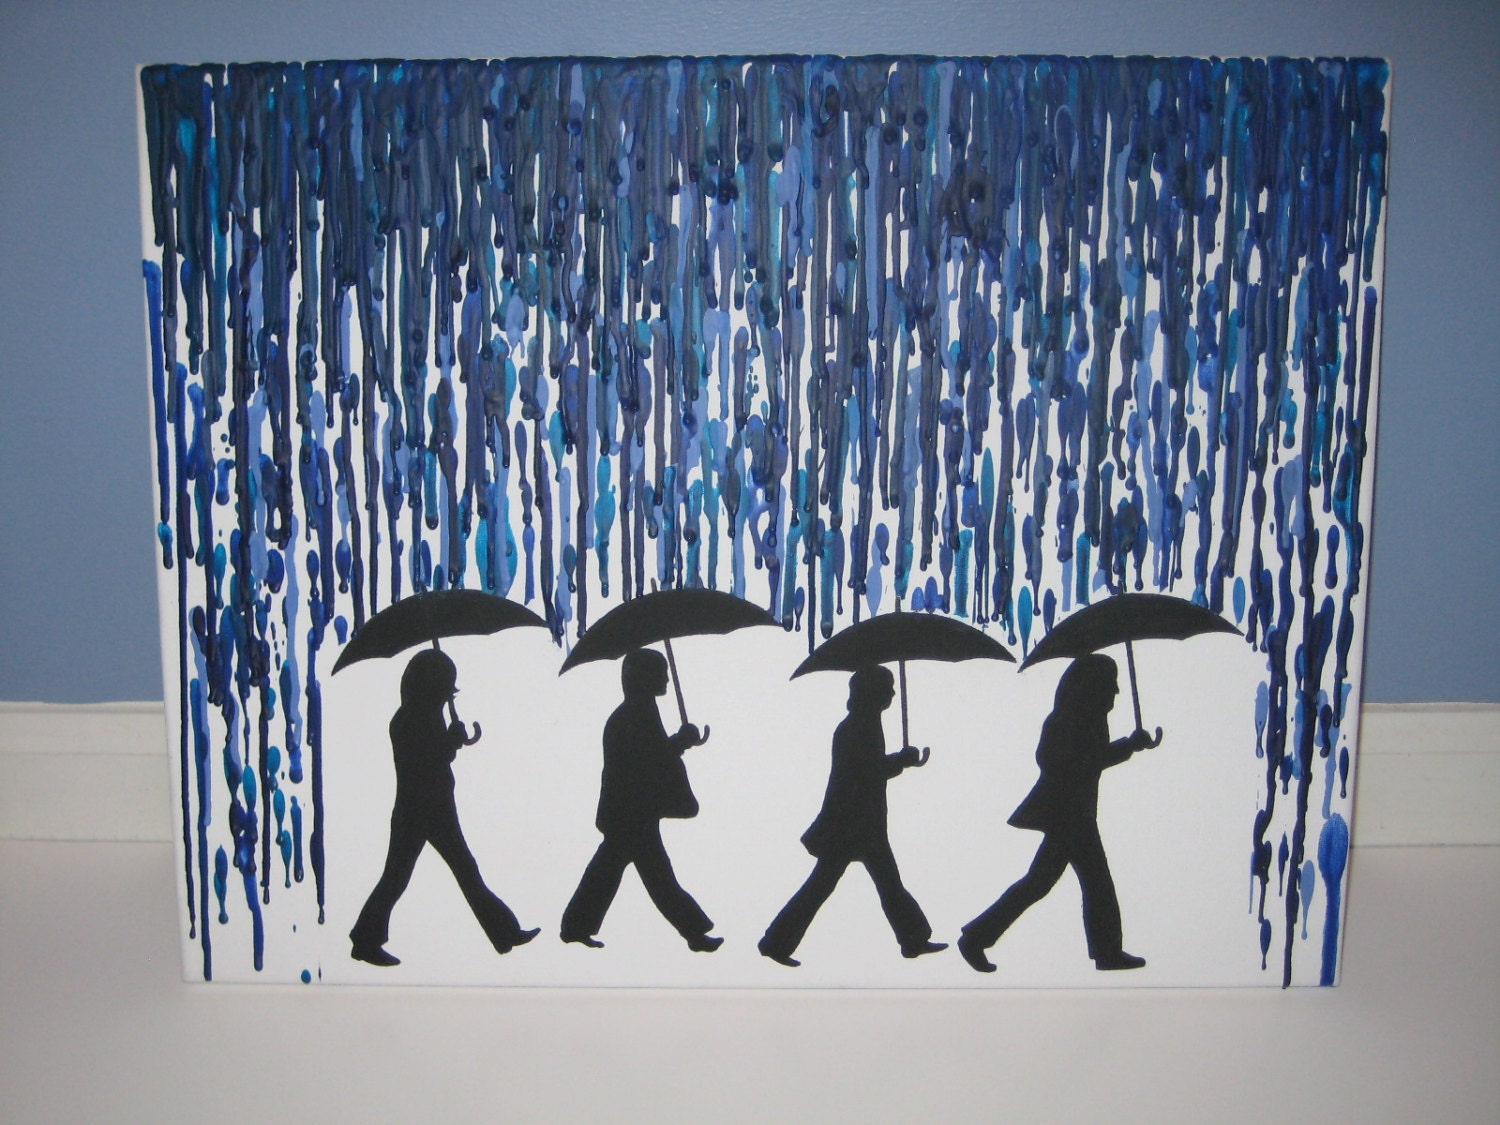 color crayon art : The Beatles Rain Melted Crayon Artwork